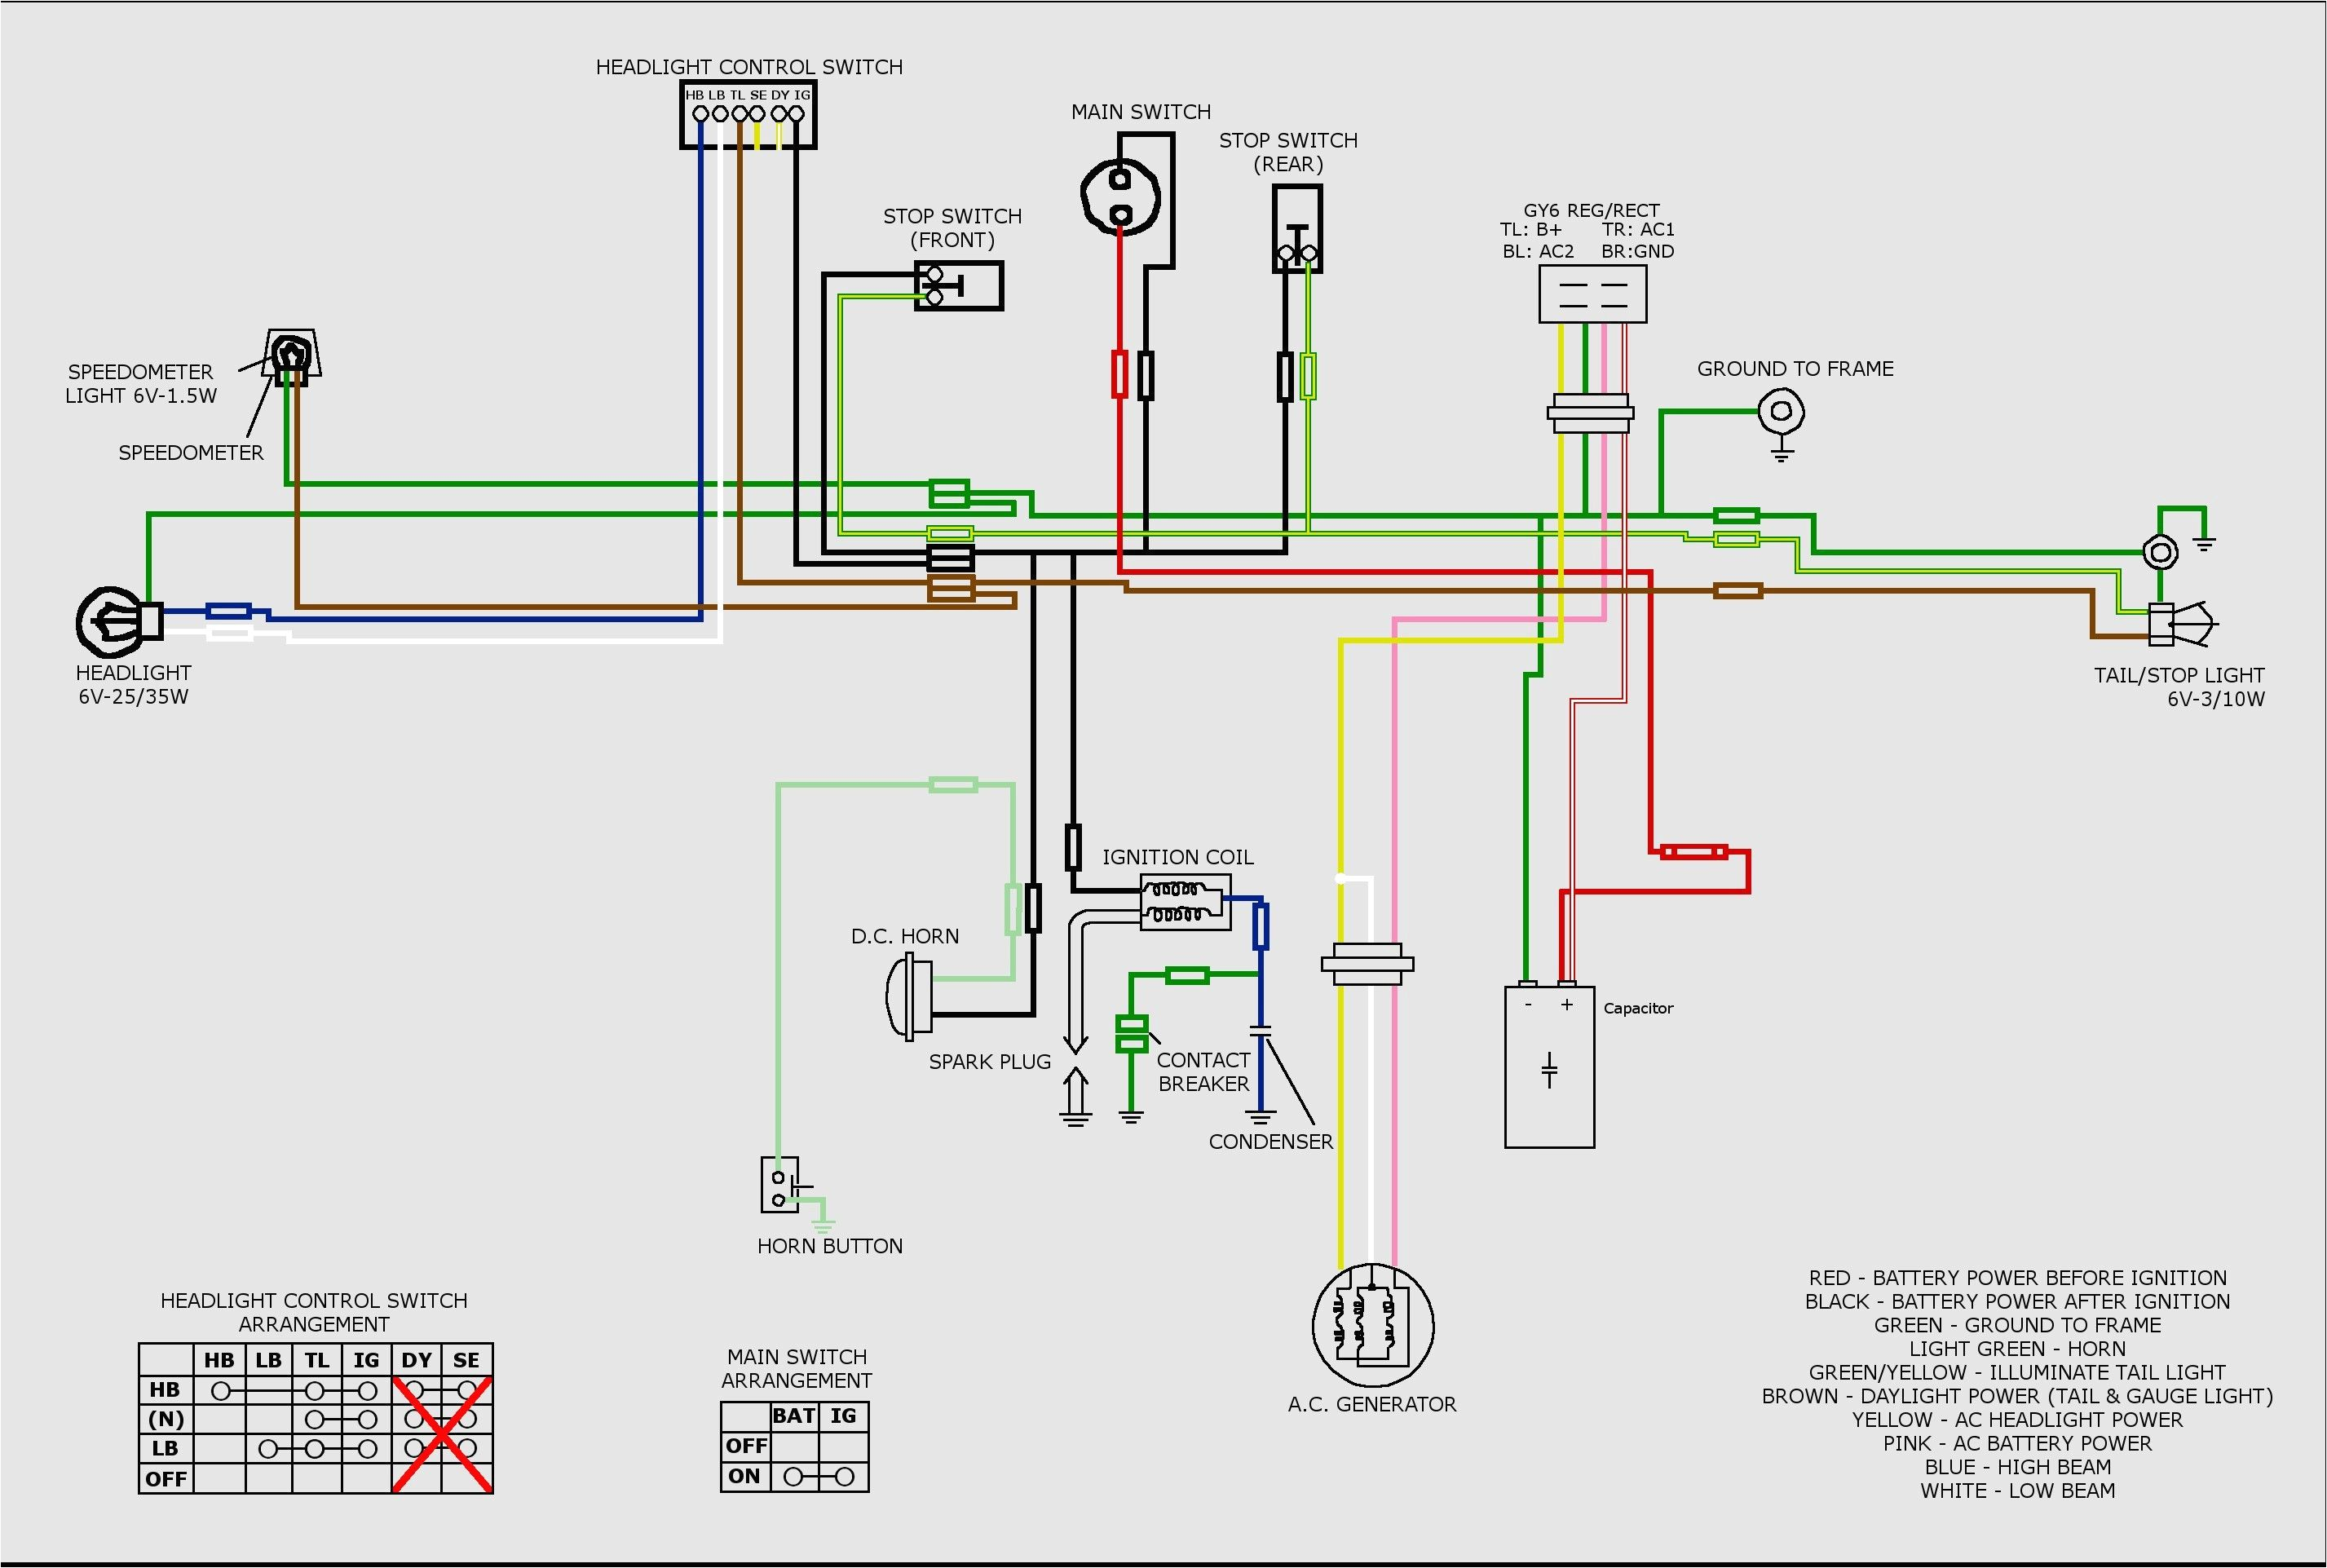 gy6 wiring harness diagram wiring diagram post gy6 wiring harness diagram wiring diagram name gy6 wiring